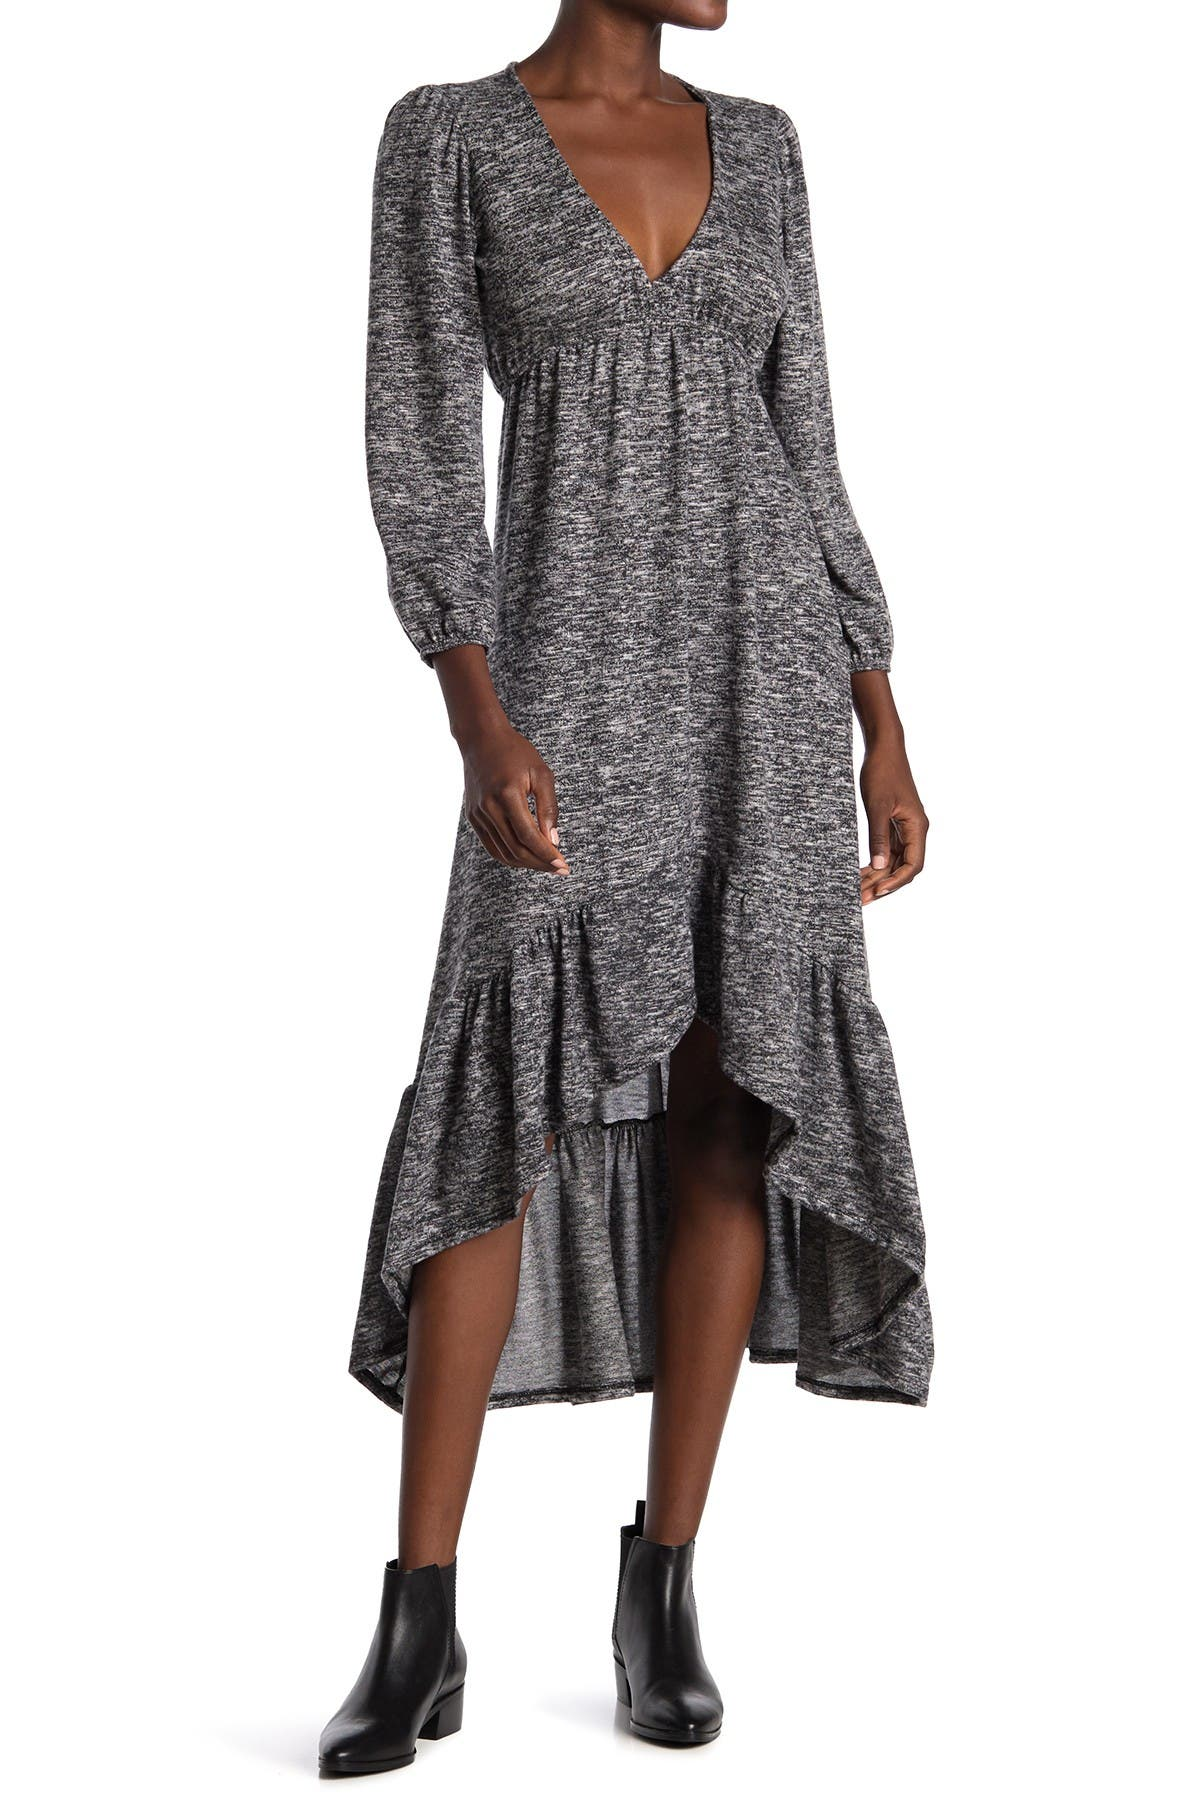 Image of Velvet Torch Heathered V-Neck Ruffled High/Low Sweater Dress